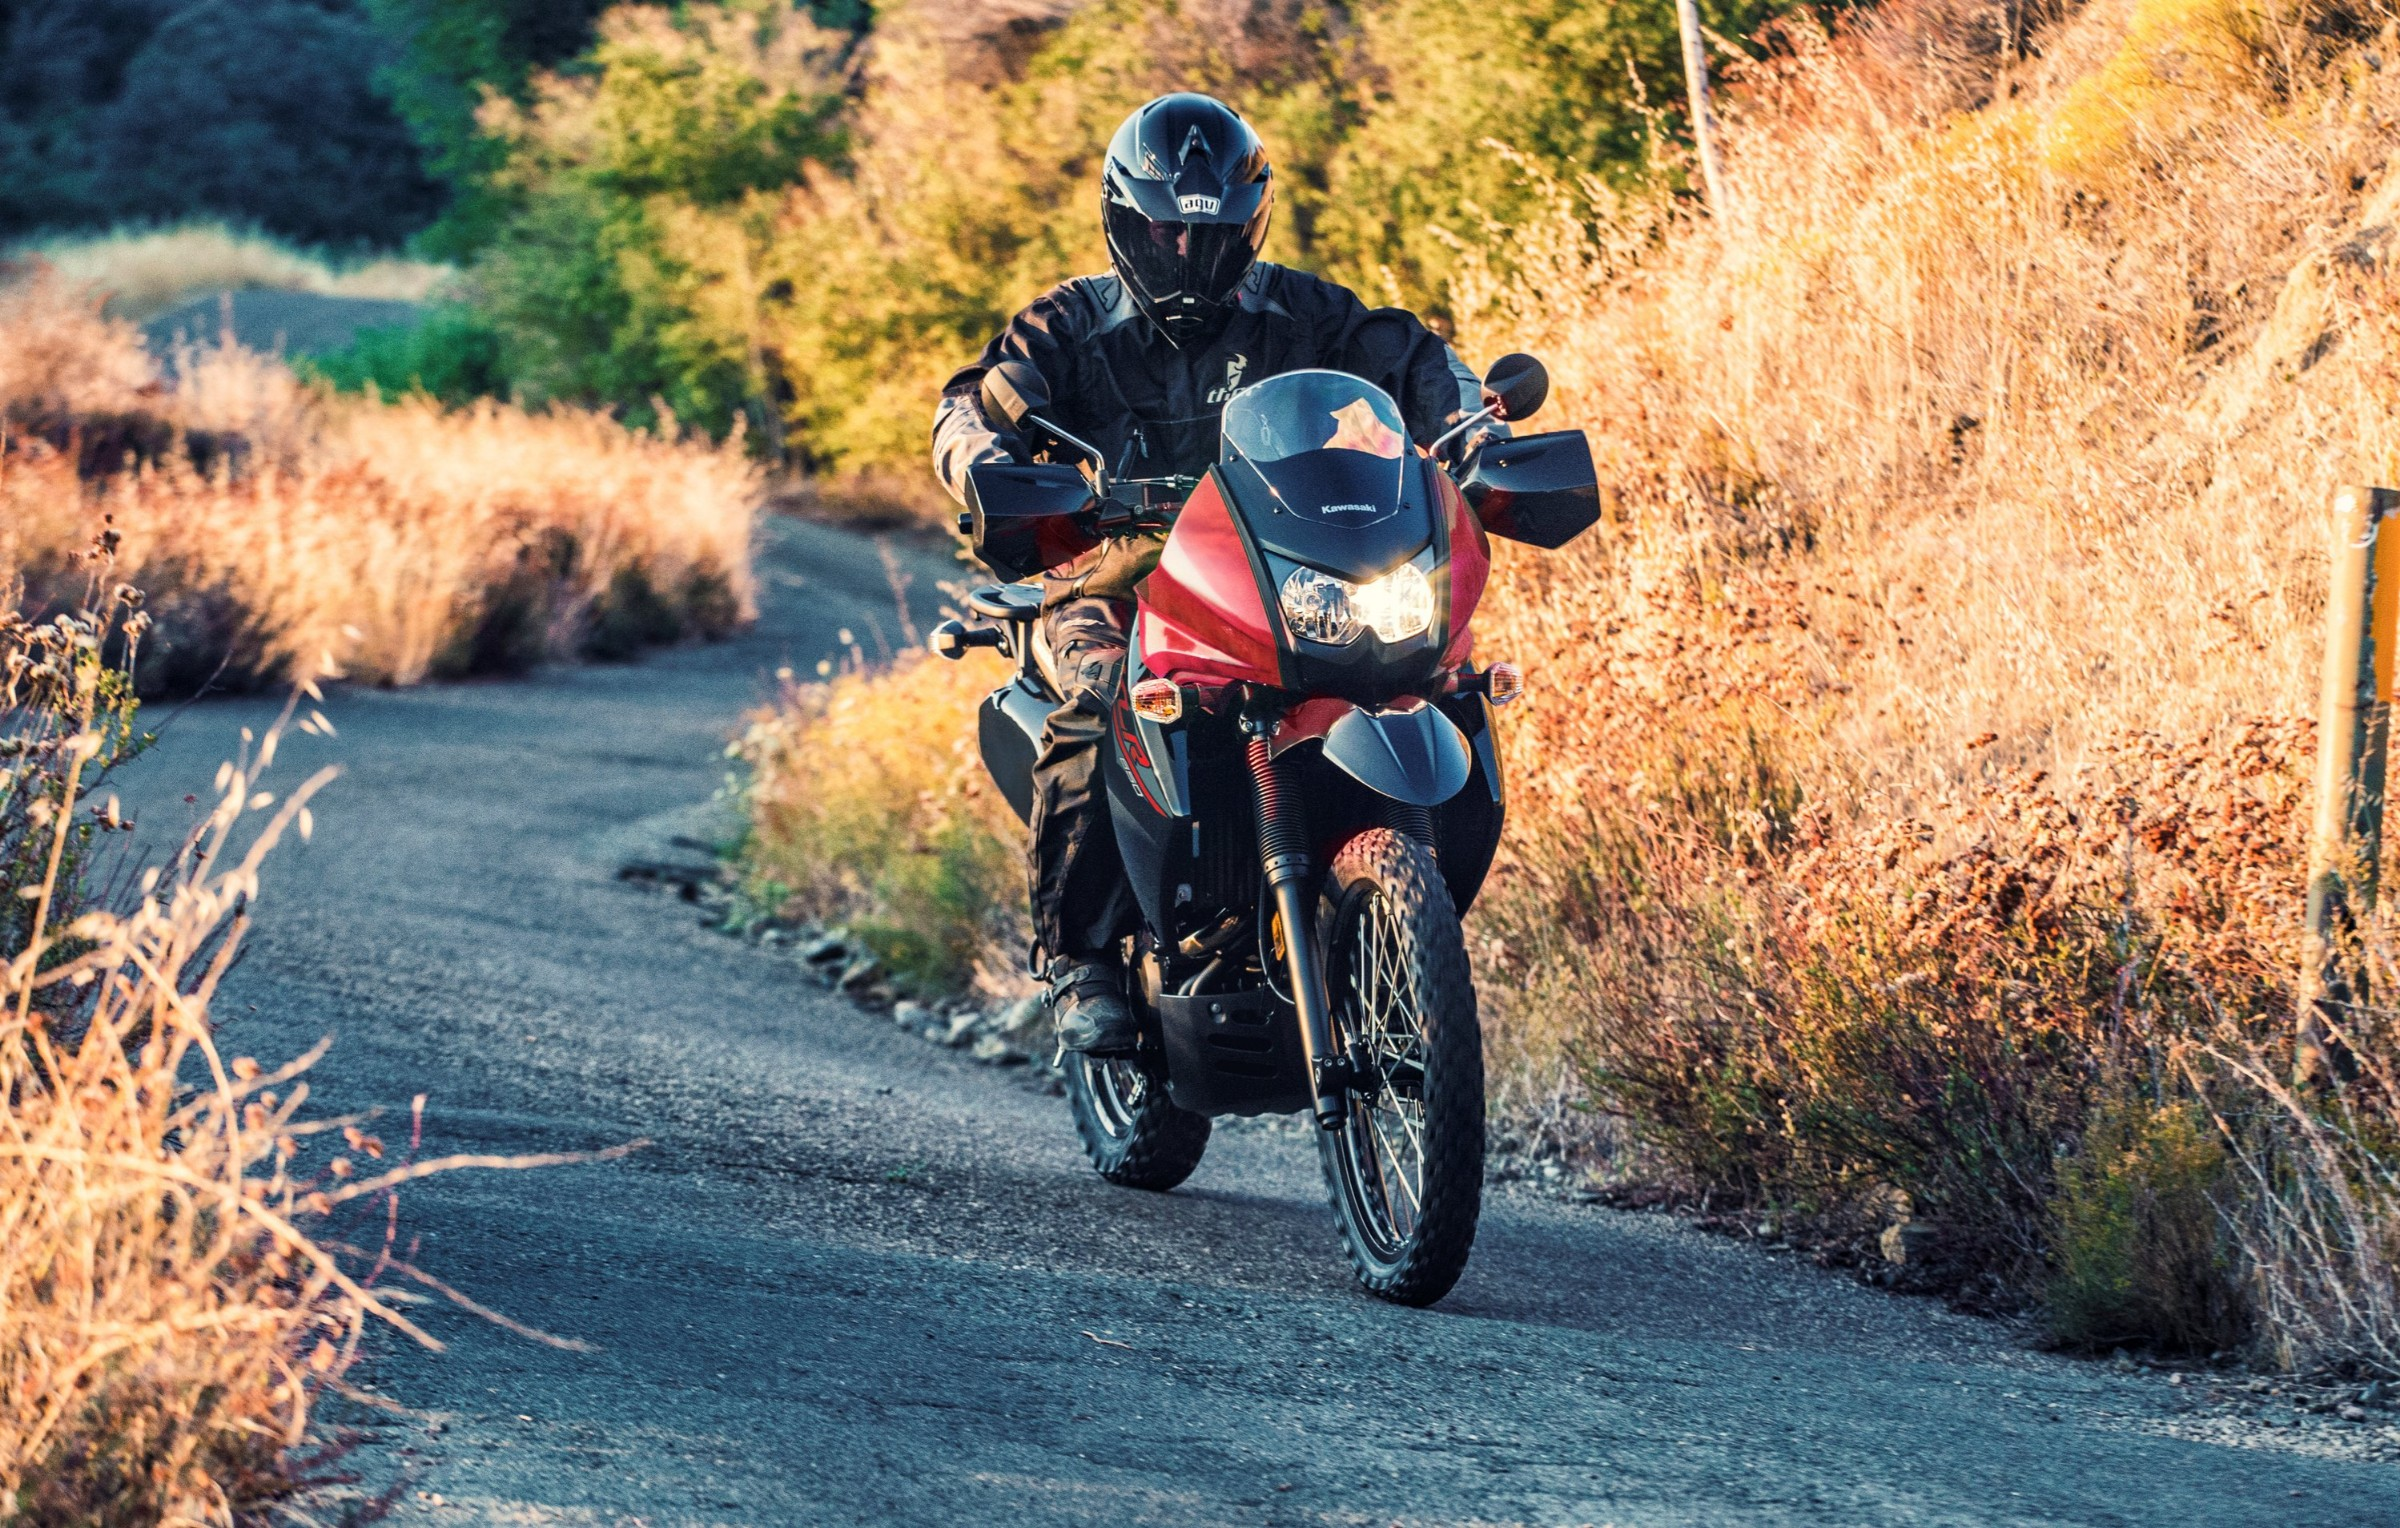 The KLR's long run is over - RevZilla